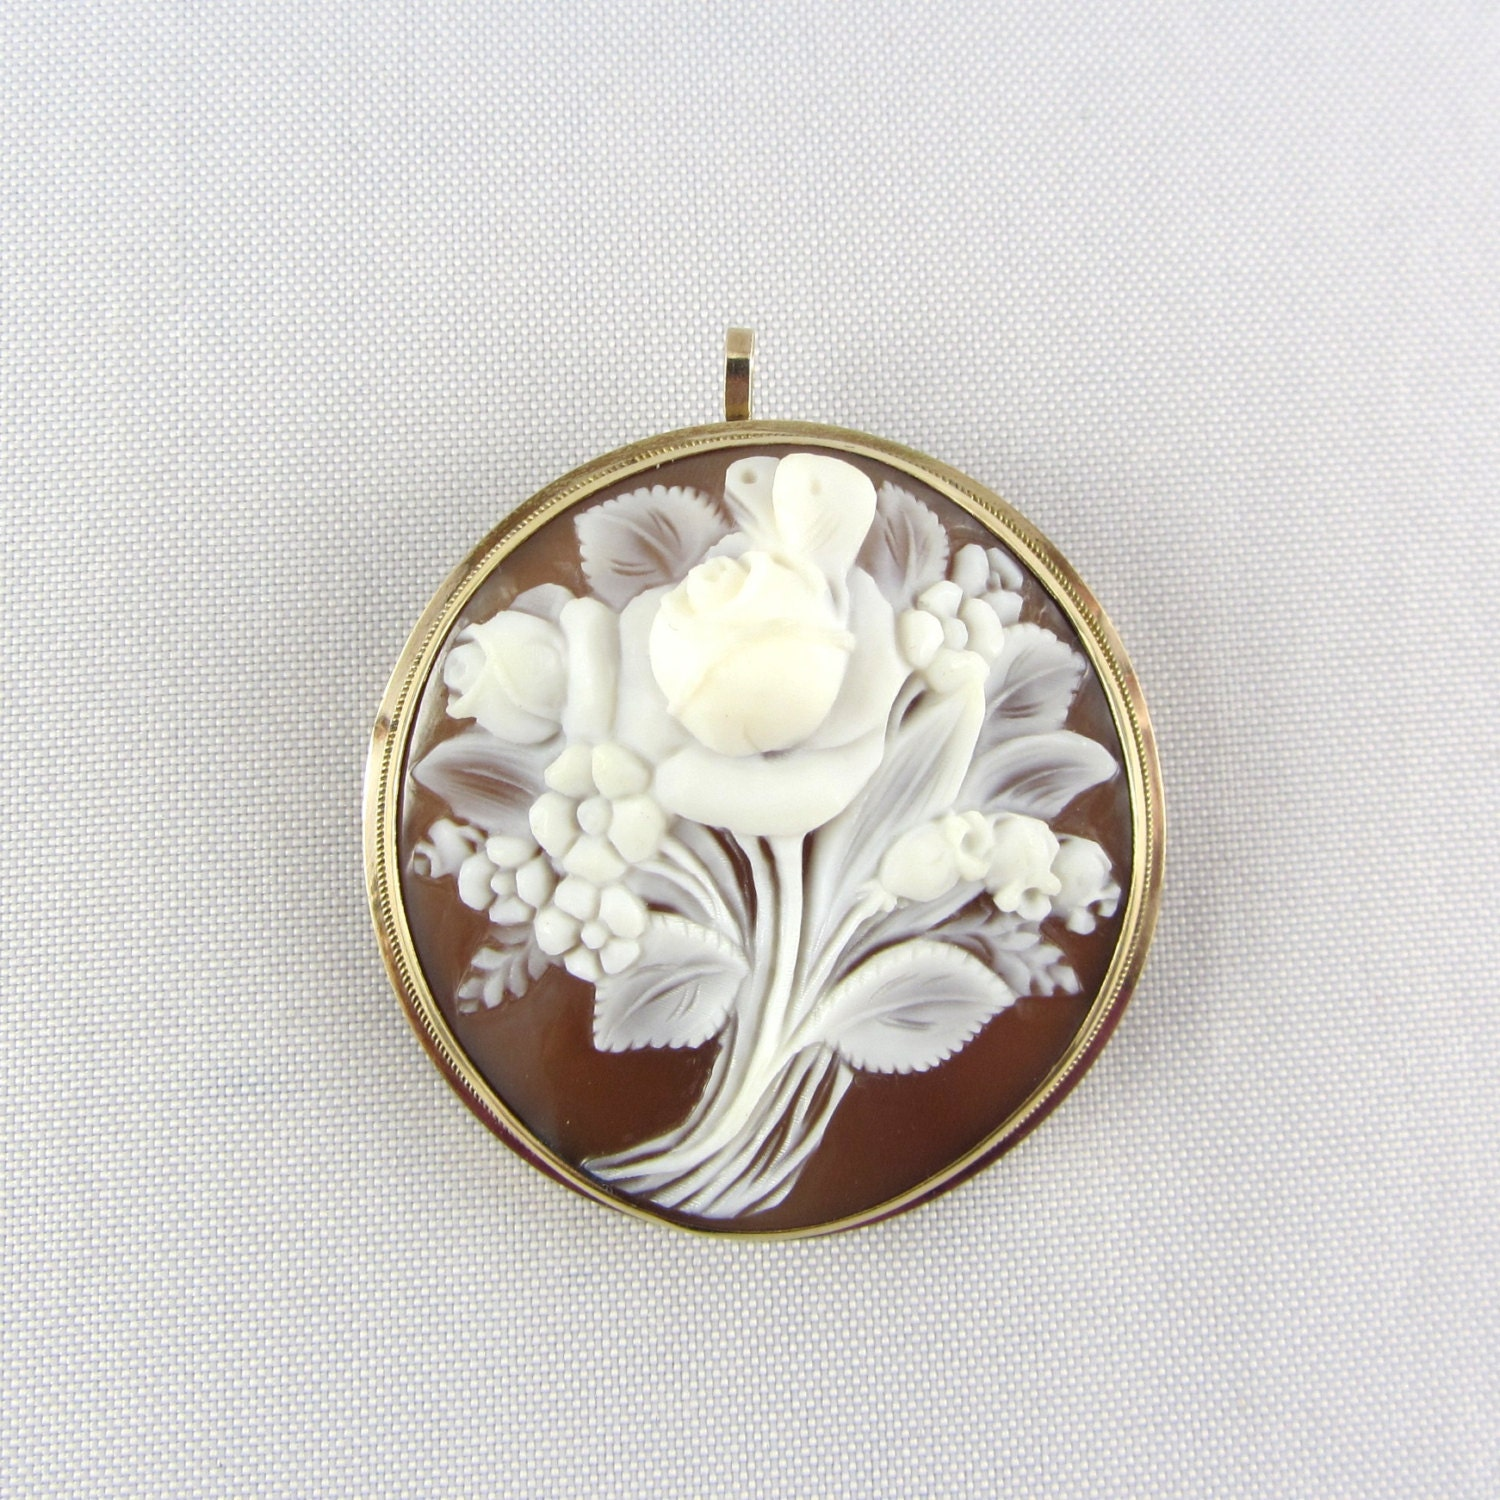 antique 14k gold cameo pendant pin brooch by